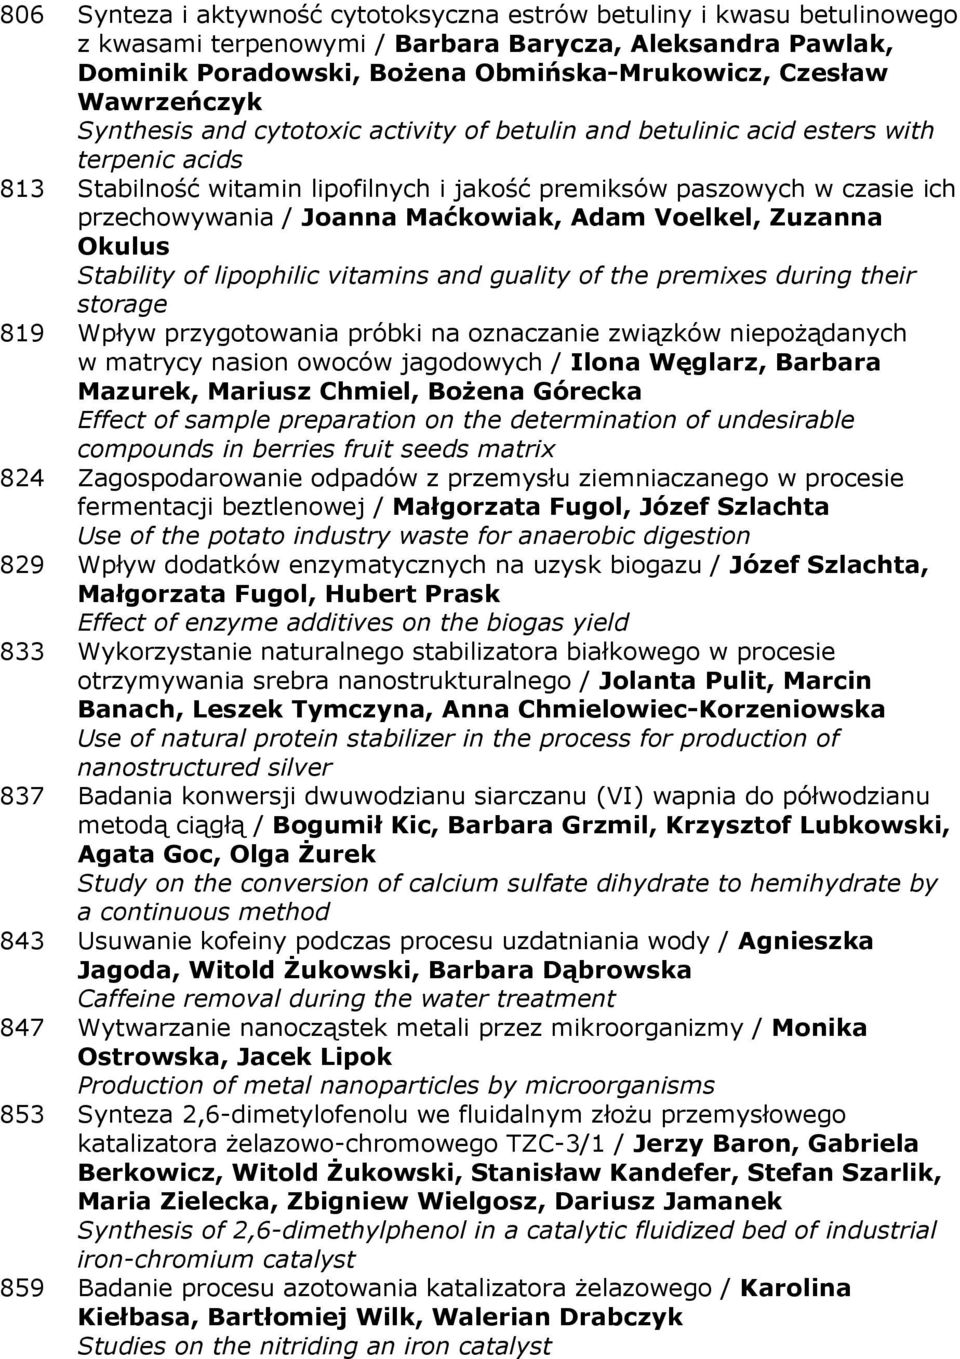 Joanna Maćkowiak, Adam Voelkel, Zuzanna Okulus Stability of lipophilic vitamins and guality of the premixes during their storage 819 Wpływ przygotowania próbki na oznaczanie związków niepożądanych w